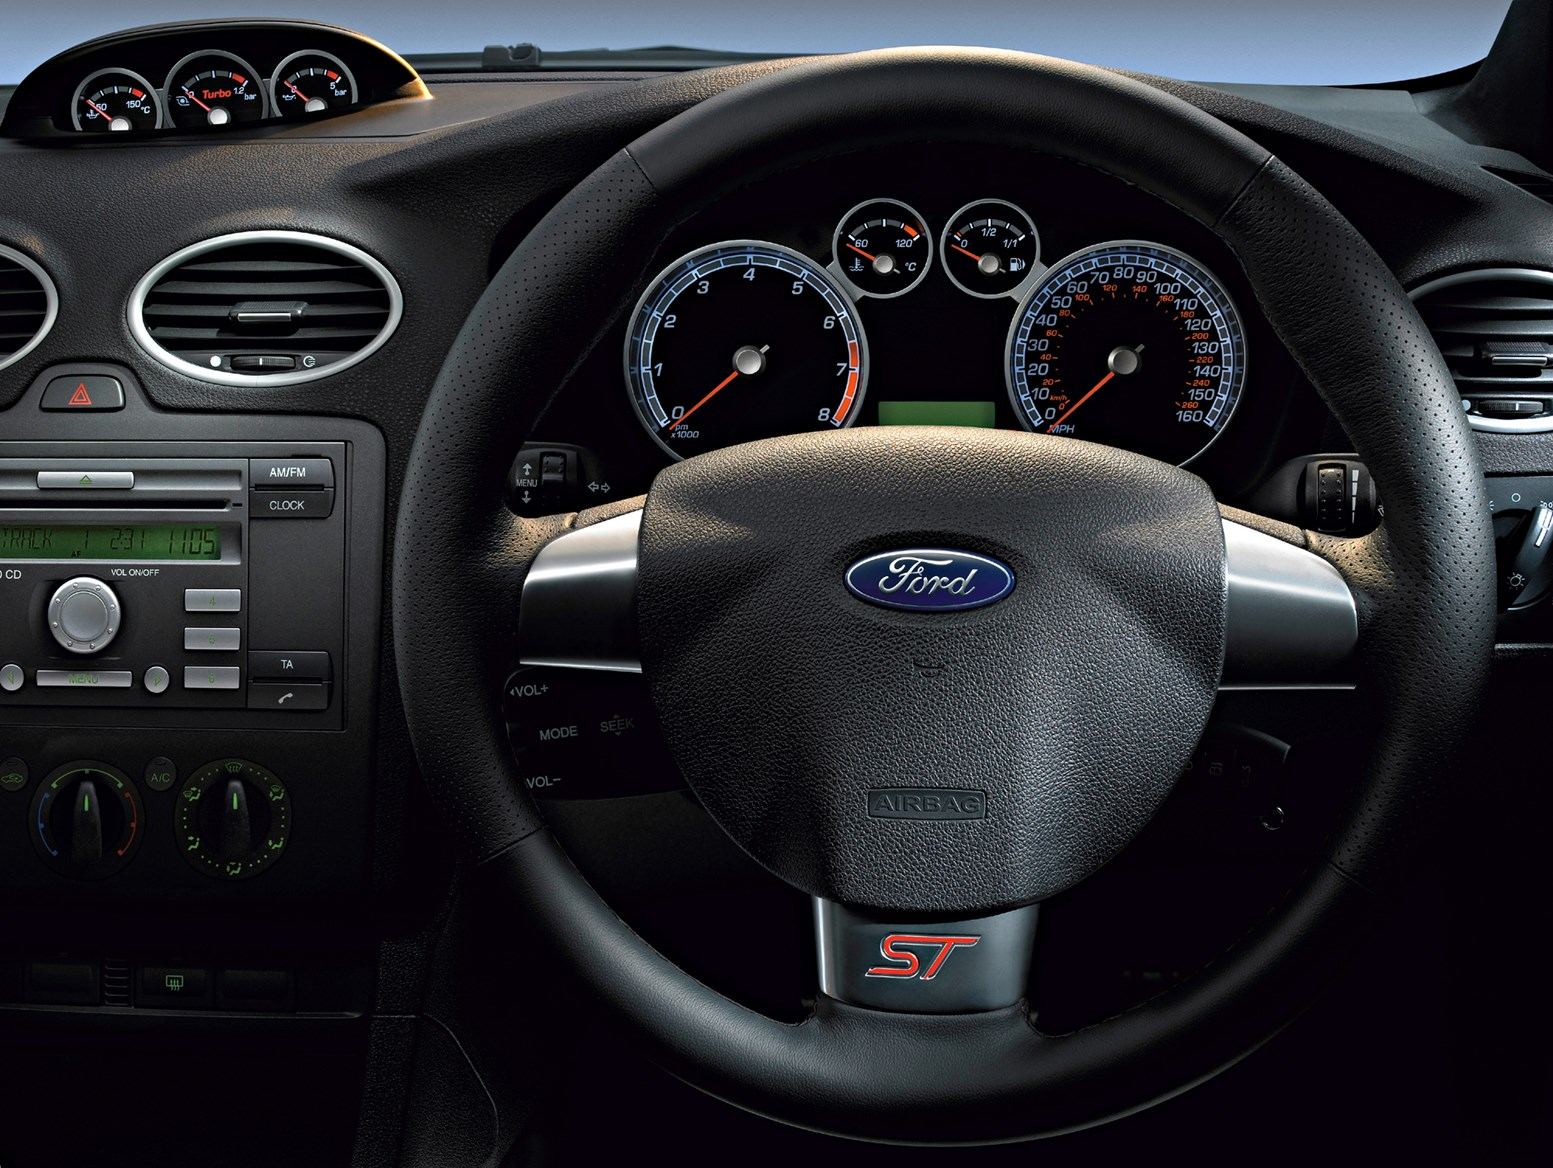 Ford focus st 2006 2010 features equipment and for Ford focus 2006 interieur